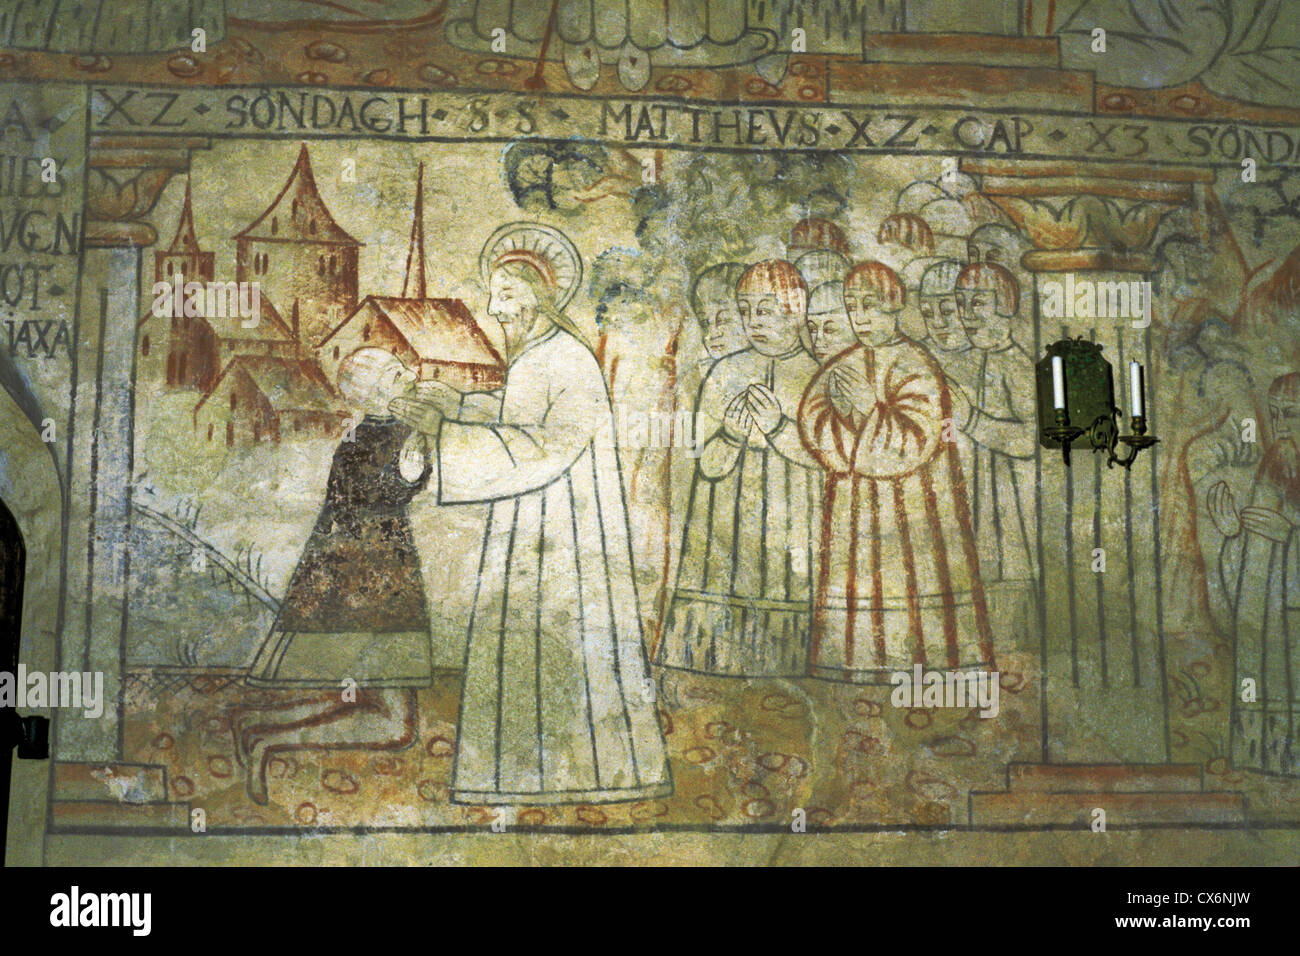 Wall mural with a depiction of jesus christ in the medieval st wall mural with a depiction of jesus christ in the medieval st lawrence church of isokyro finland amipublicfo Image collections